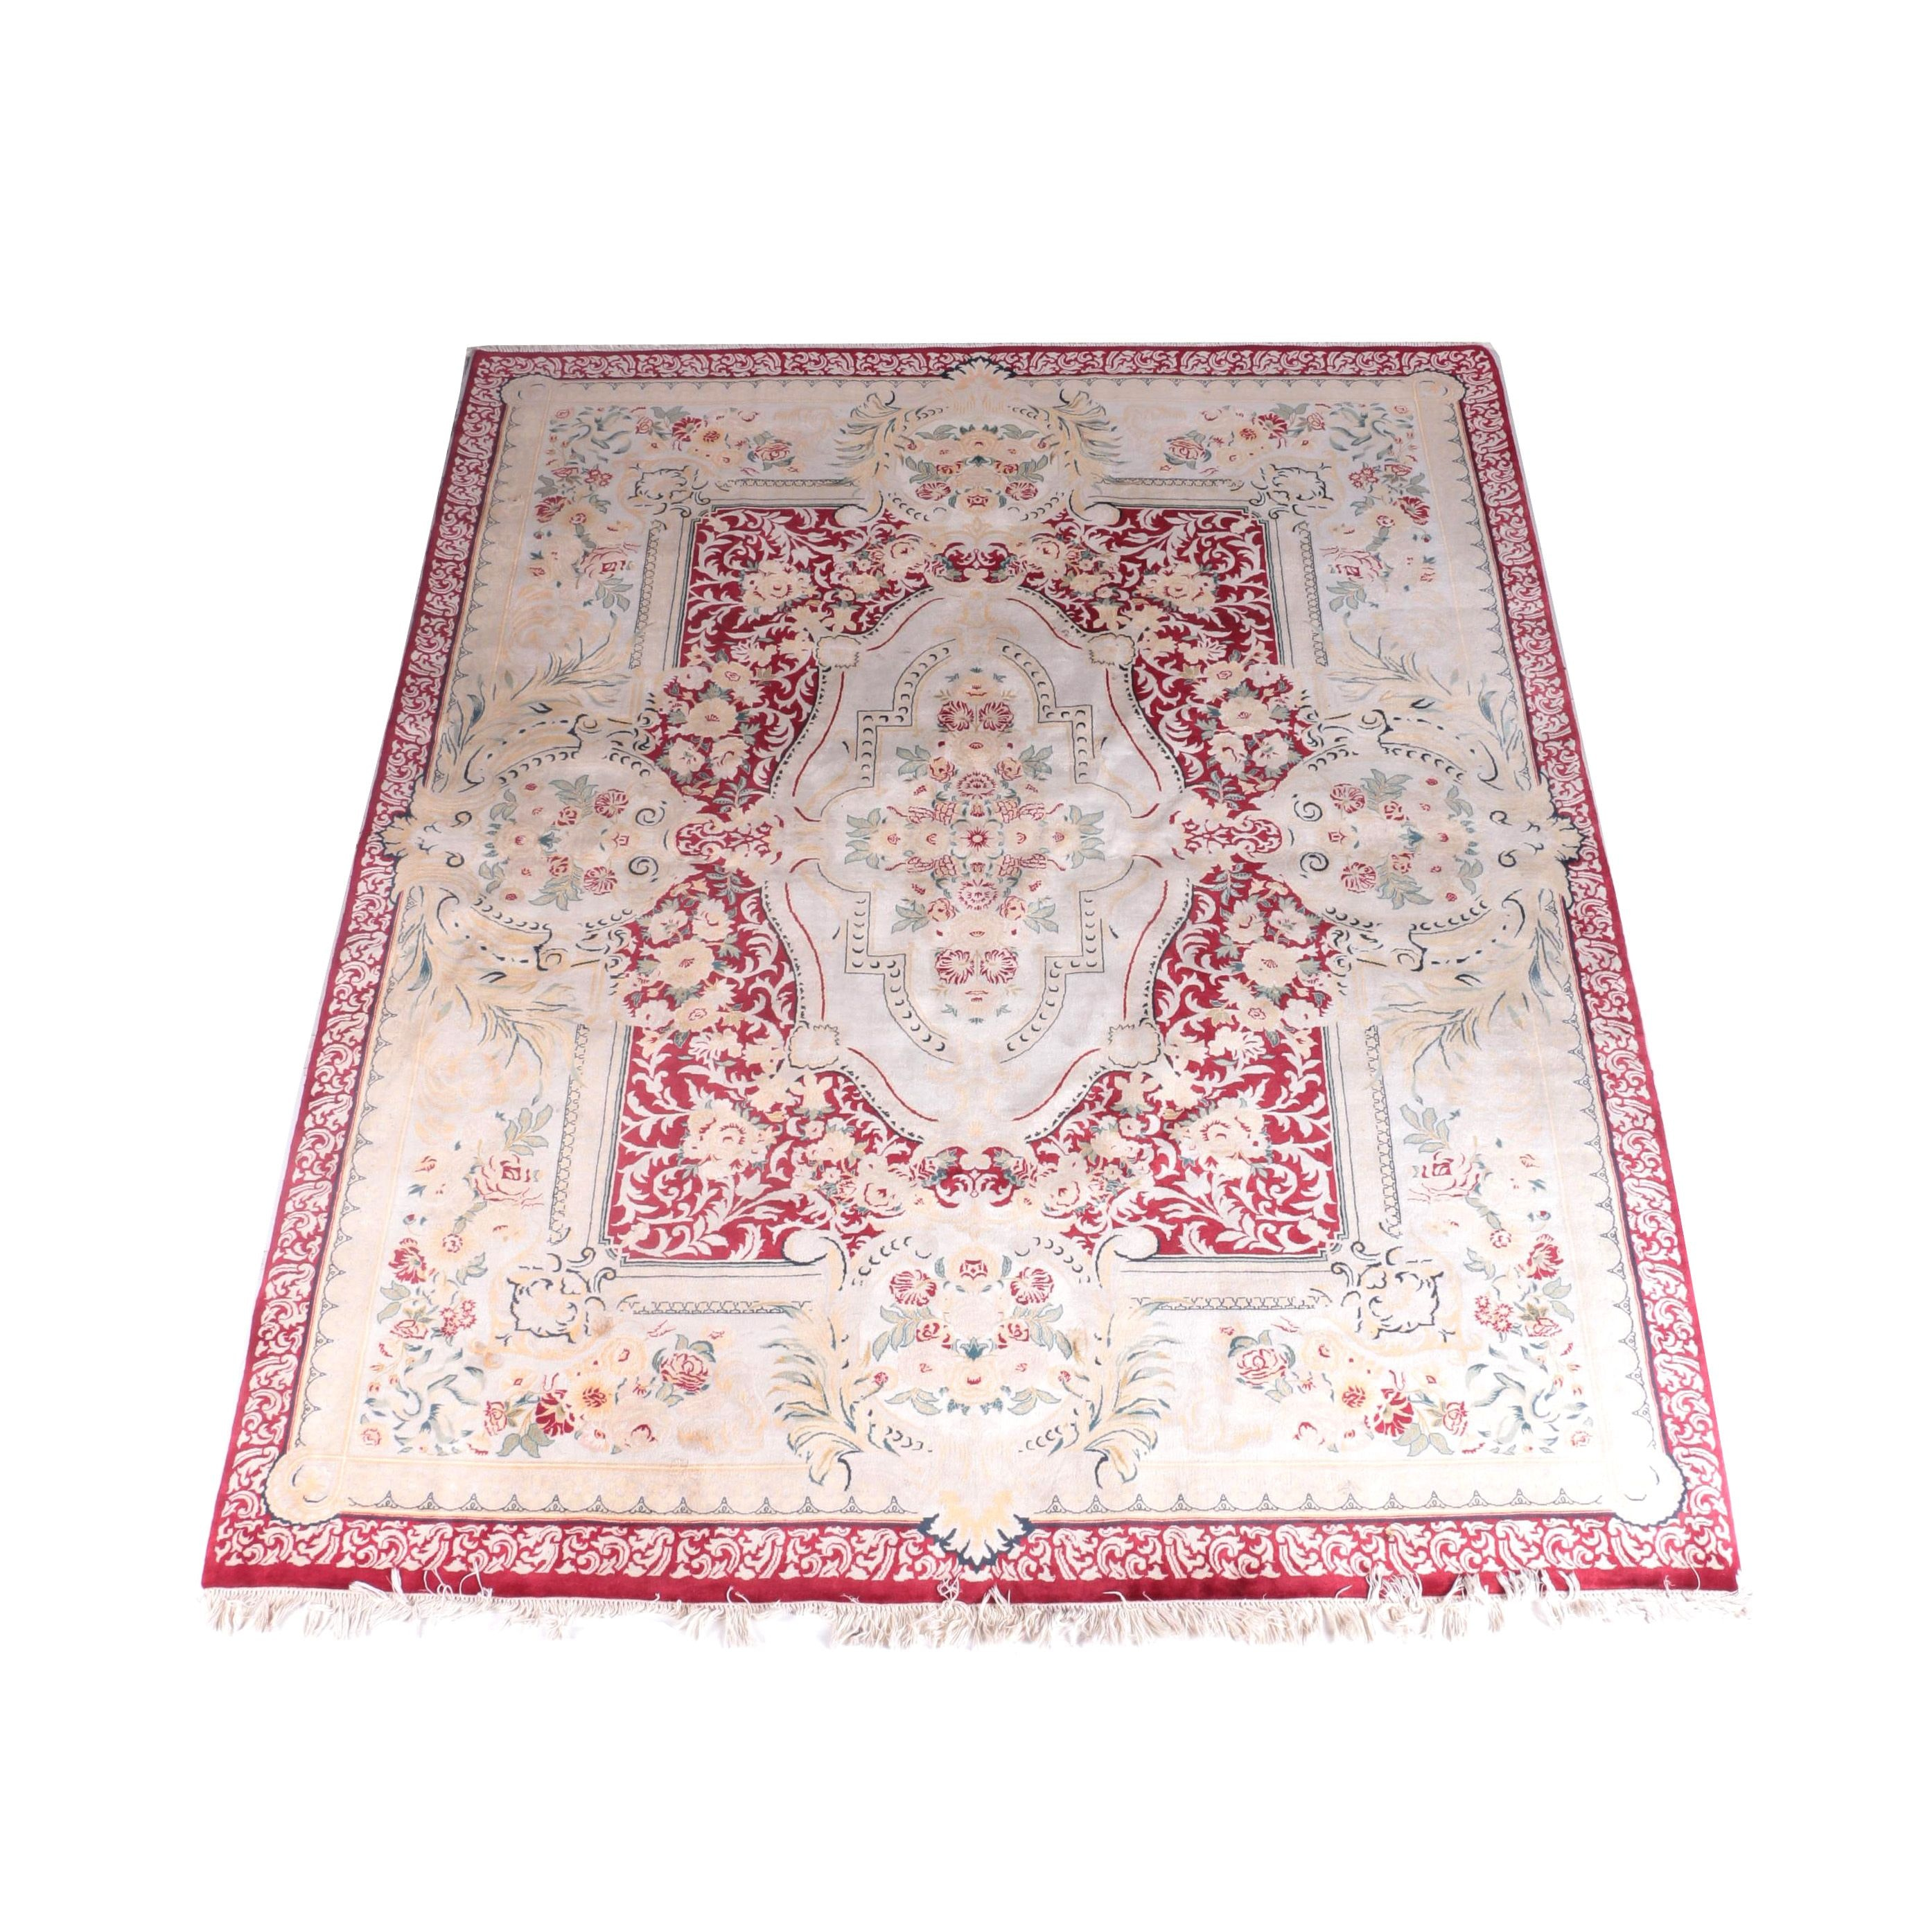 Finely Hand-Knotted Wool and Silk Area Rug